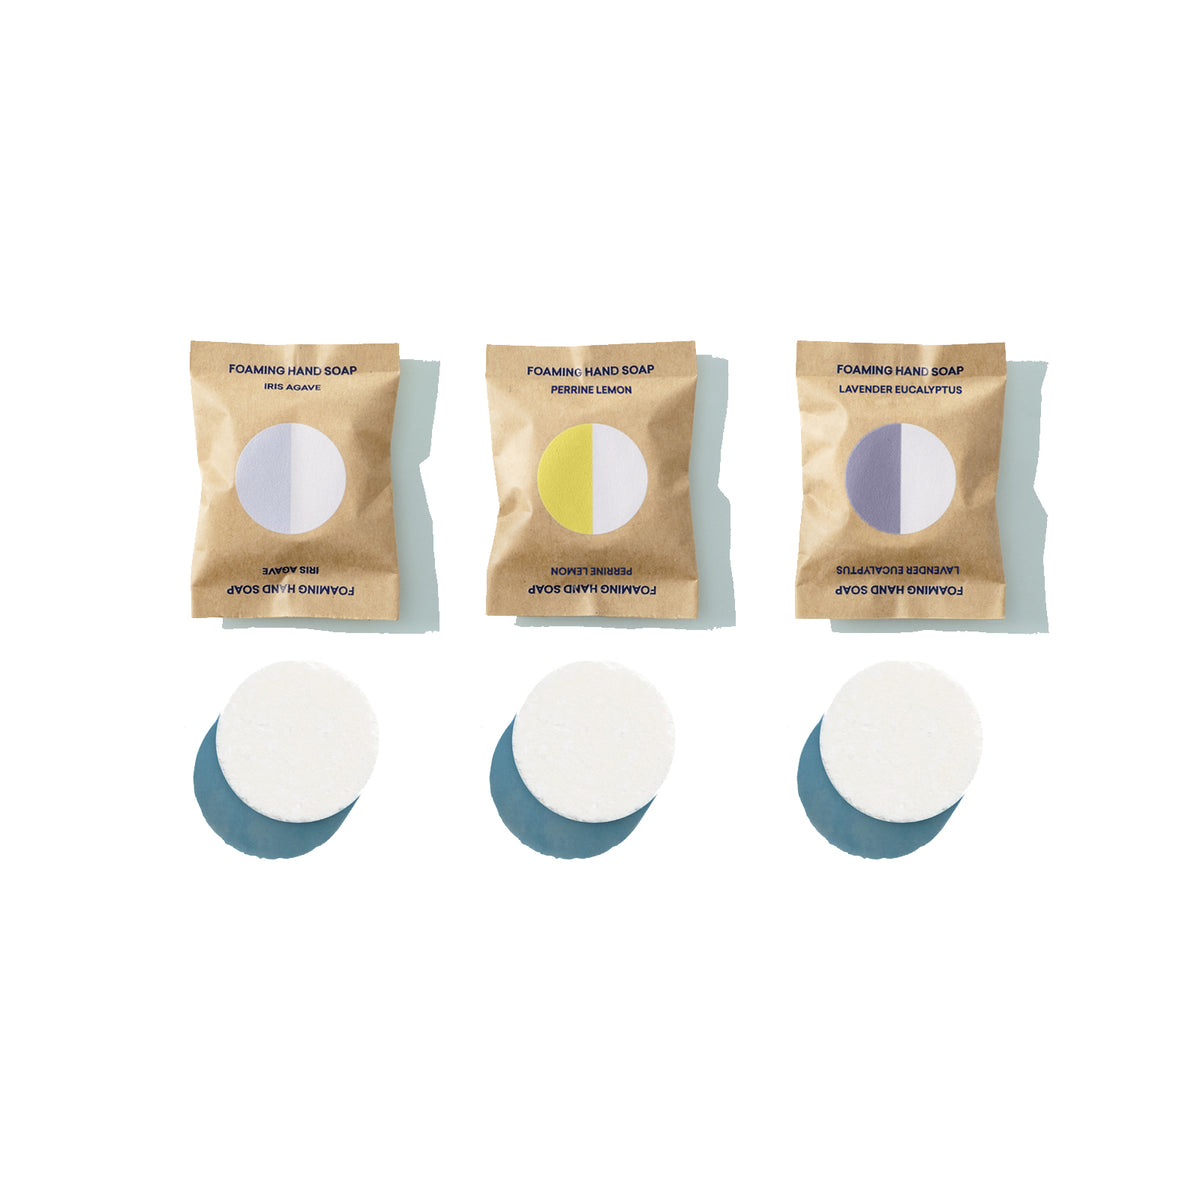 Three Foaming Hand Soap Tablets unwrapped with packaging above, Iris Agave scent, Perrine Lemon scent, Lavender Eucalyptus Scent